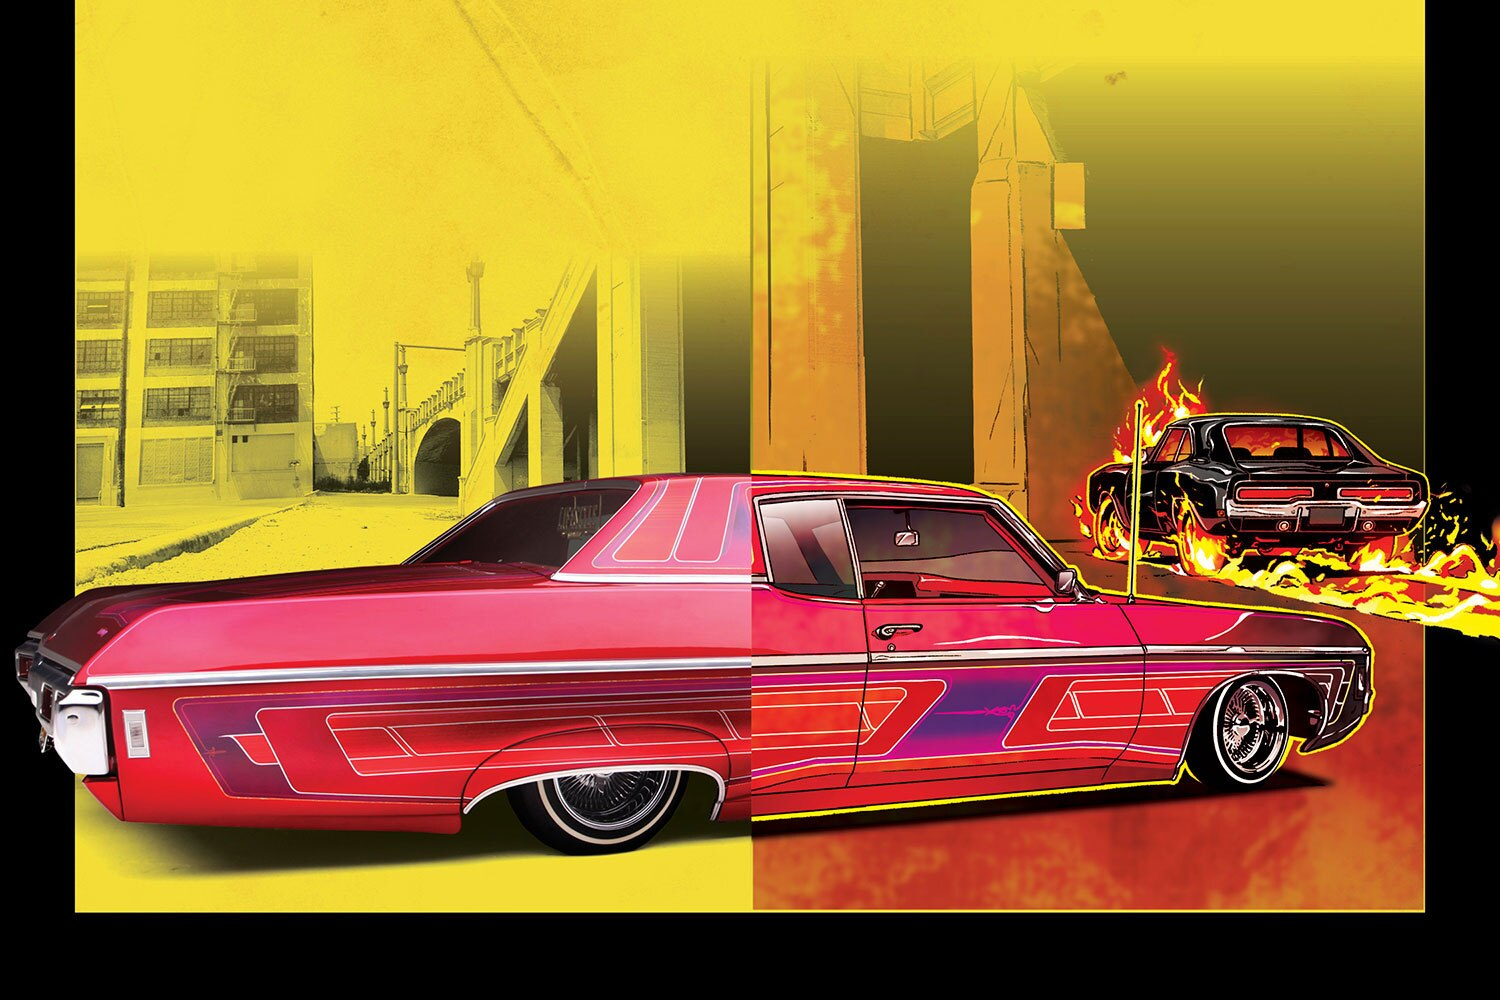 <center>Our '69 Caprice Cover Car with the new Ghost Rider's '69 Charger</center>